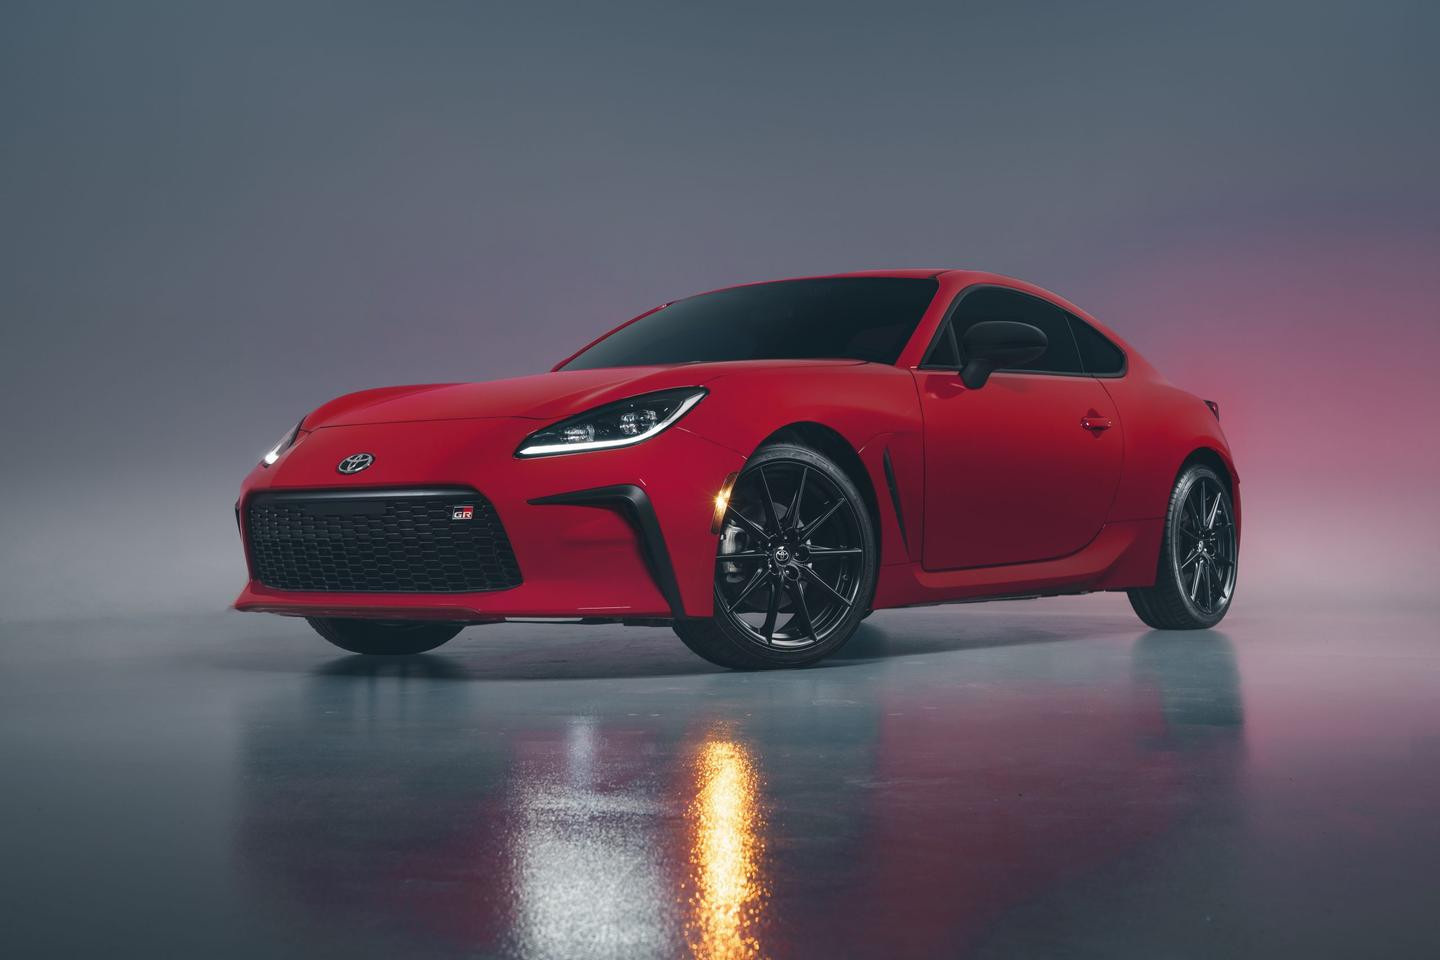 The 2022 Toyota GR 86 debuts with several upgrades to improve performance without